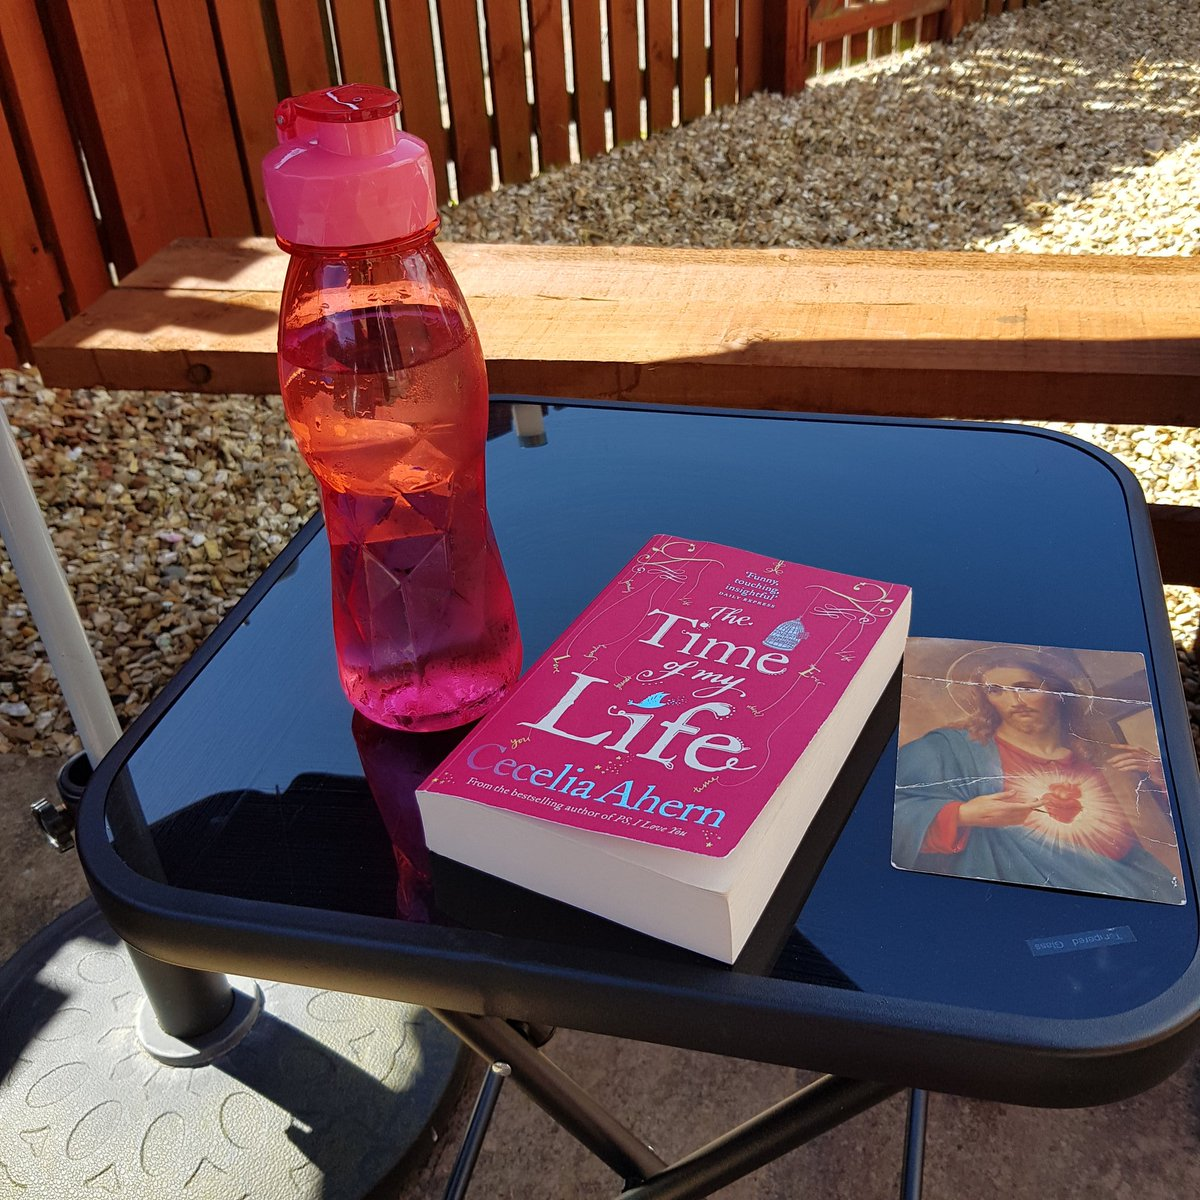 This is the life!! The sun is shining and starting a new book!! #summer #reading #chill ❤❤☀️☀️📕😁😁